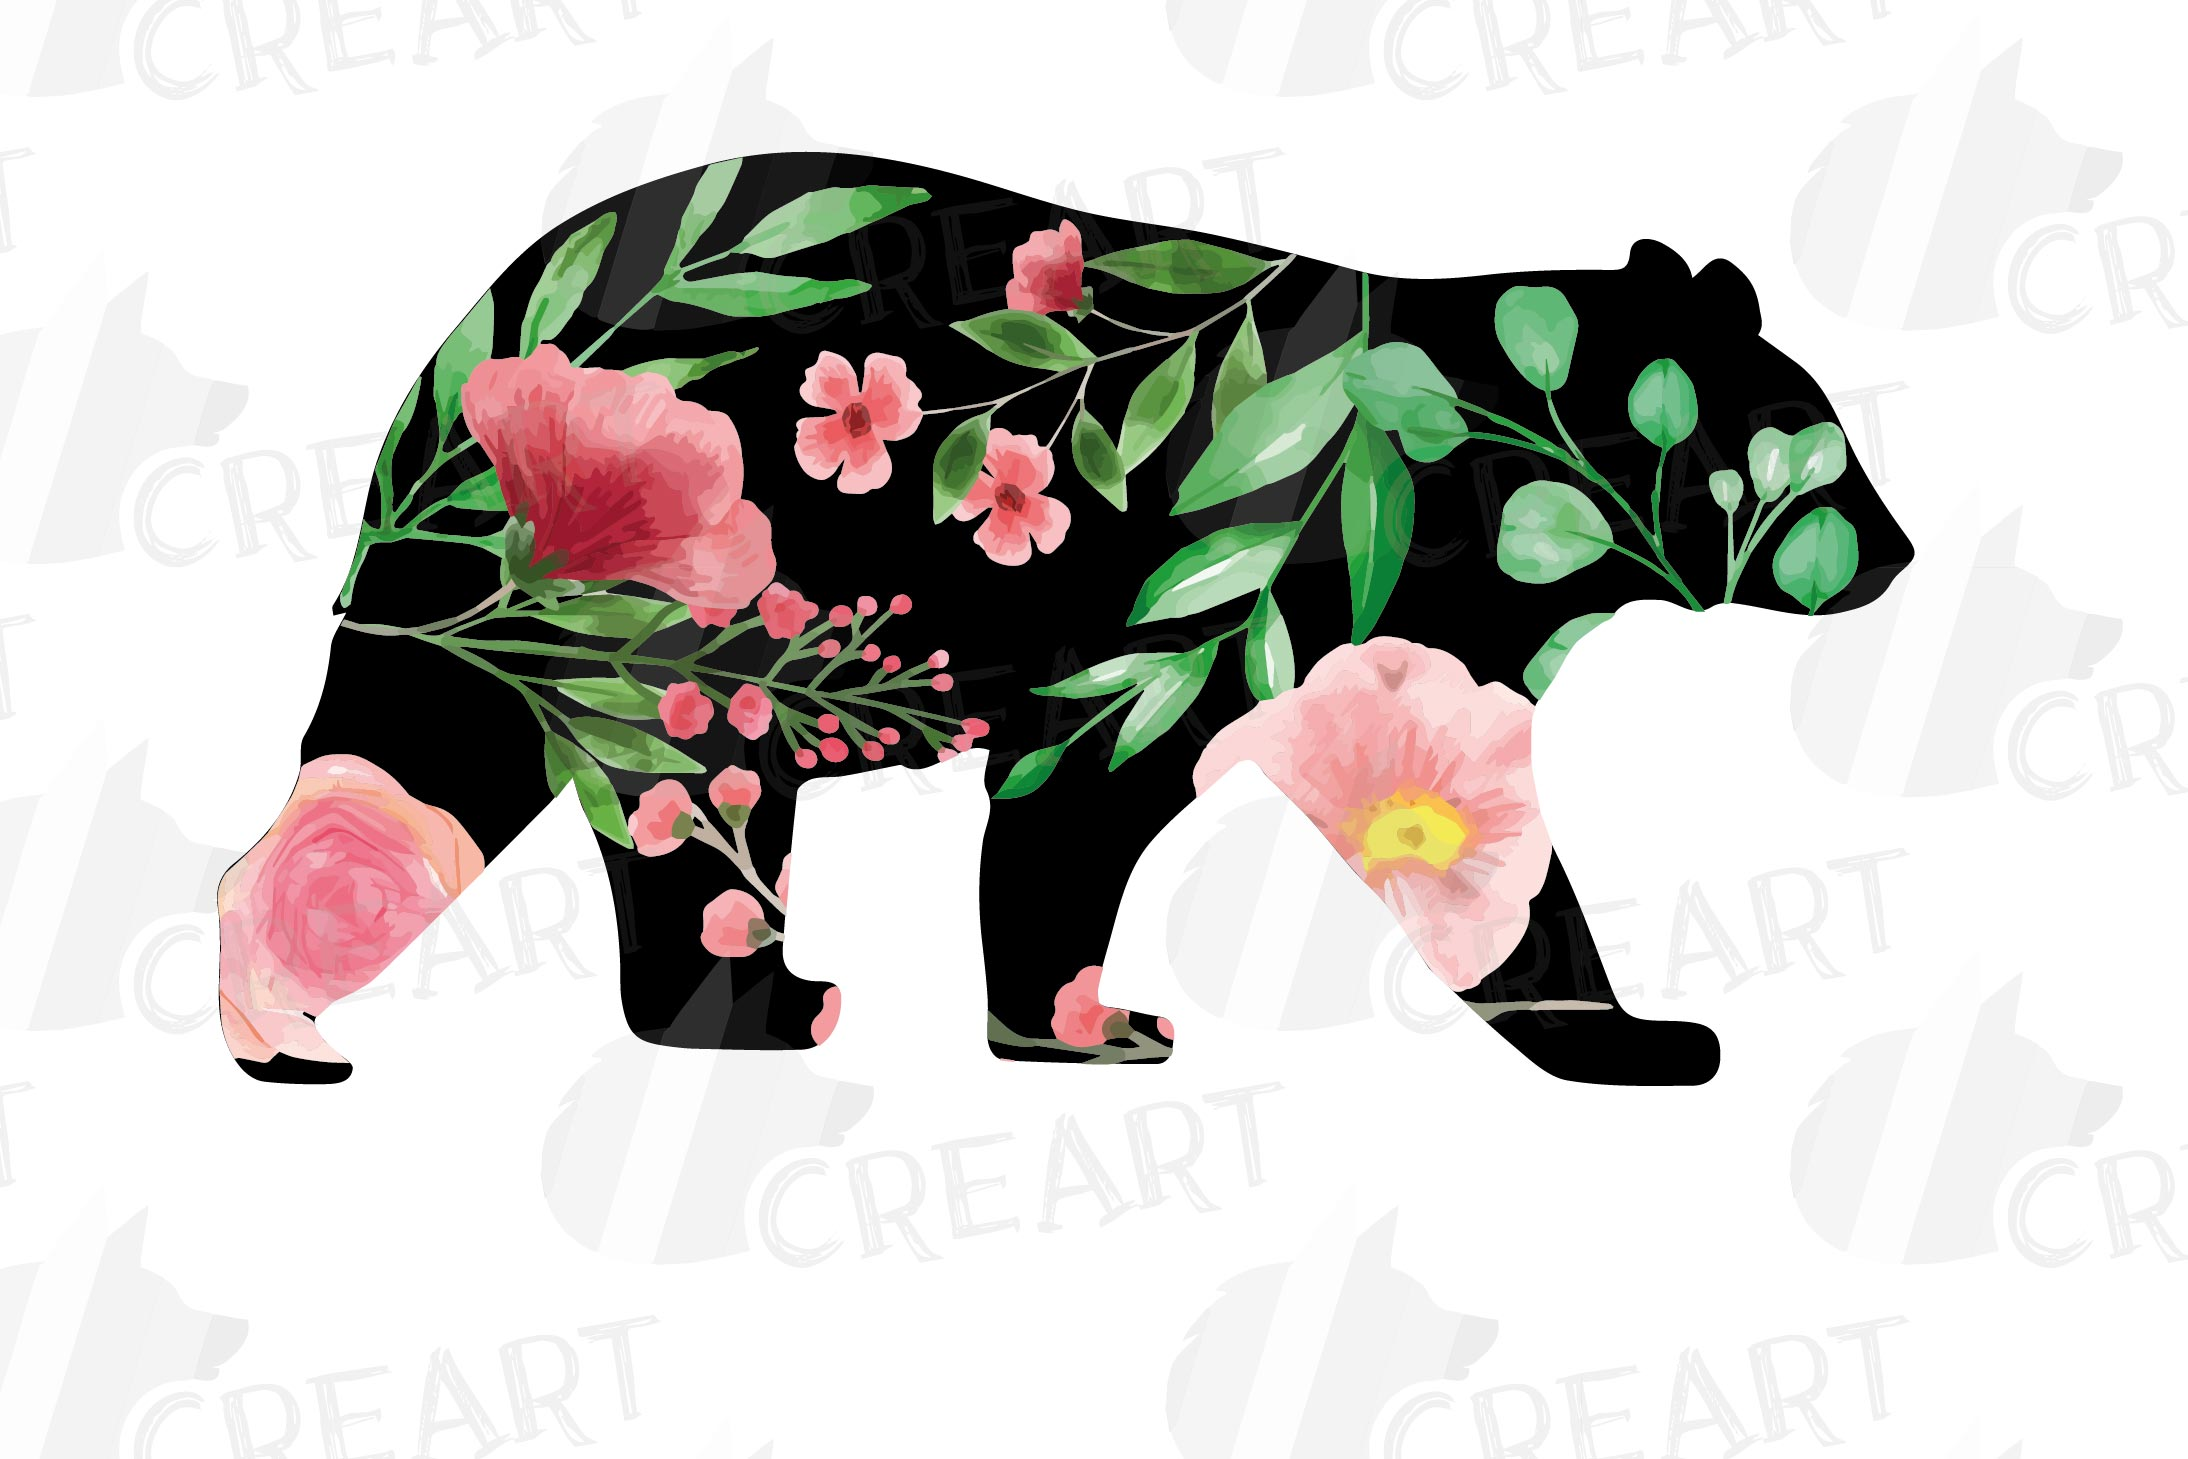 Floral bear family, sister, brother, baby, papa and mama example image 15